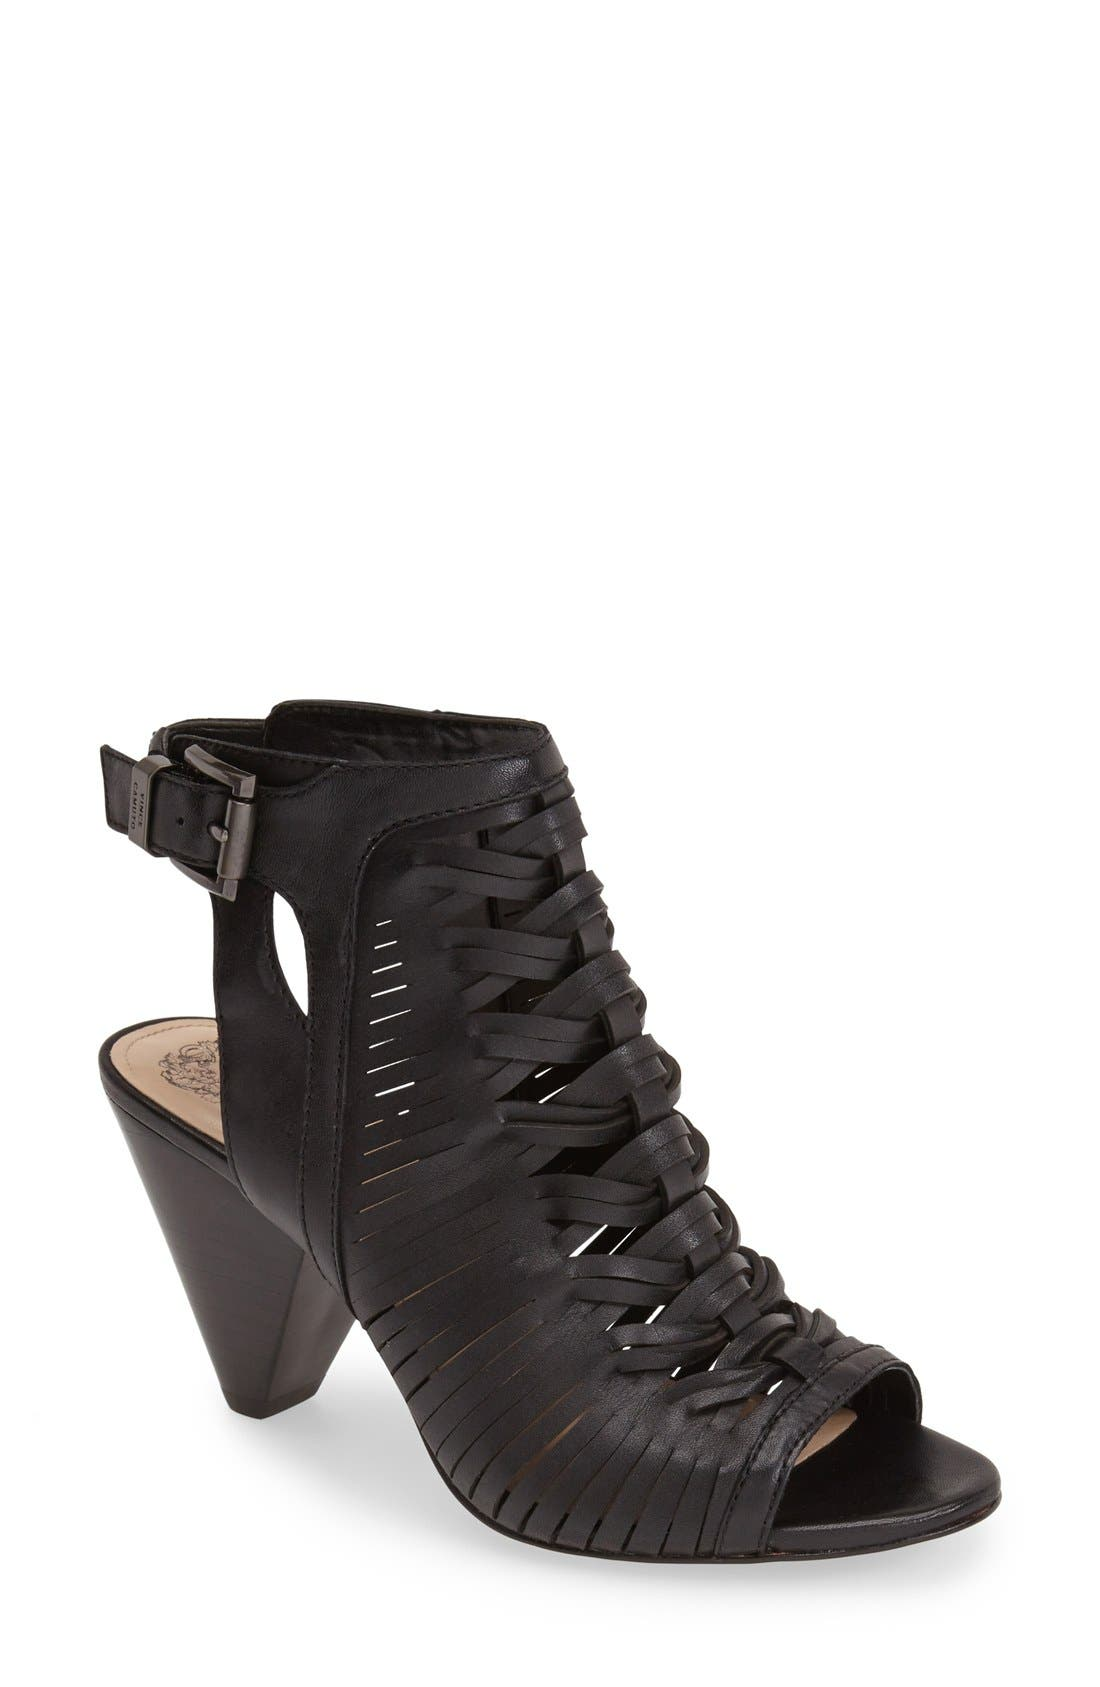 'Emore' Leather Sandal,                         Main,                         color, 001